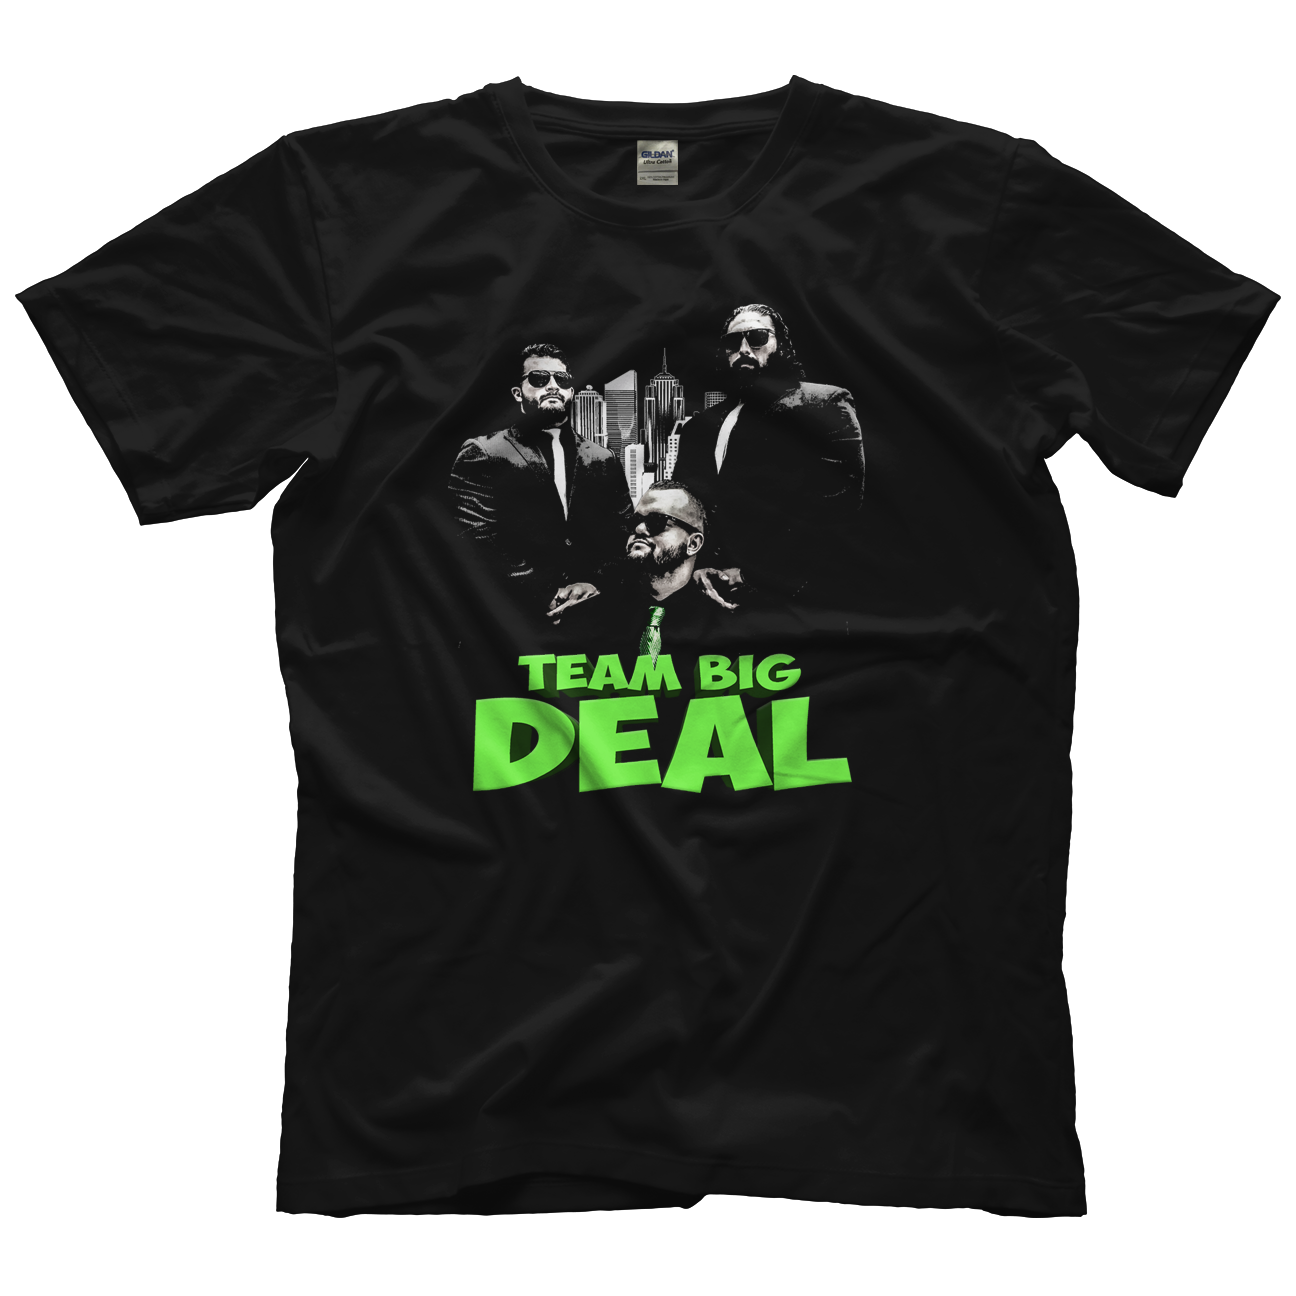 The Big Deal T-shirt